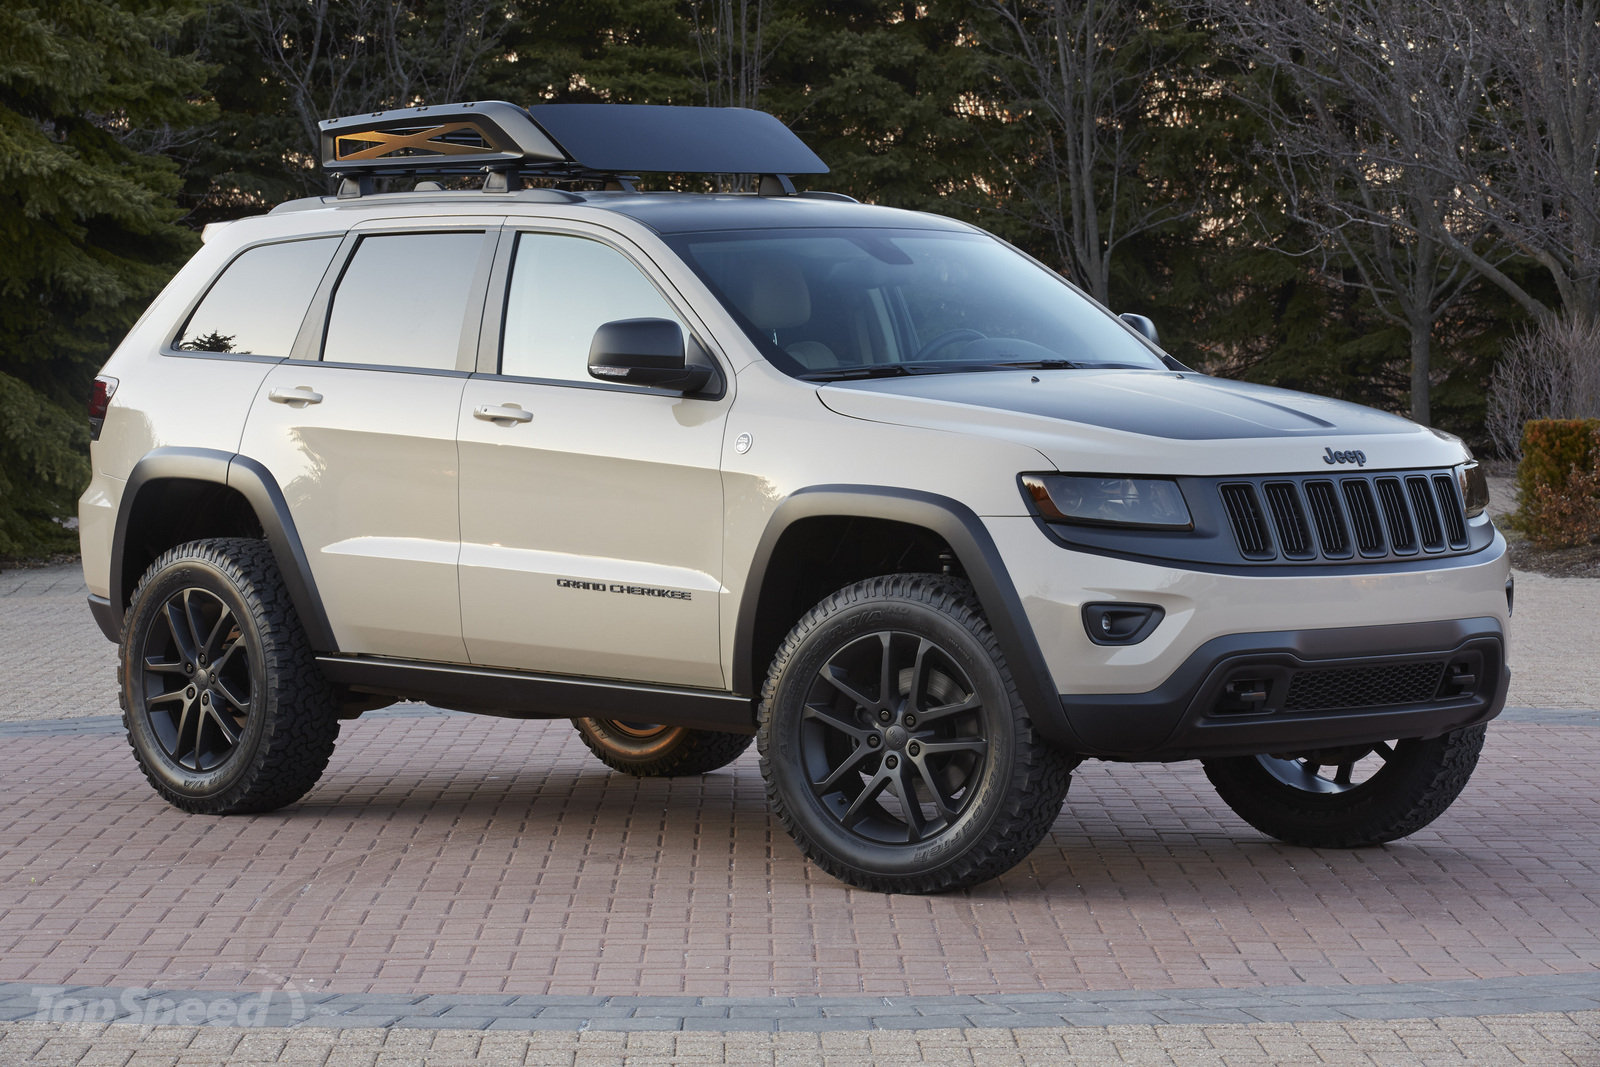 jeep grand cherokee images #11